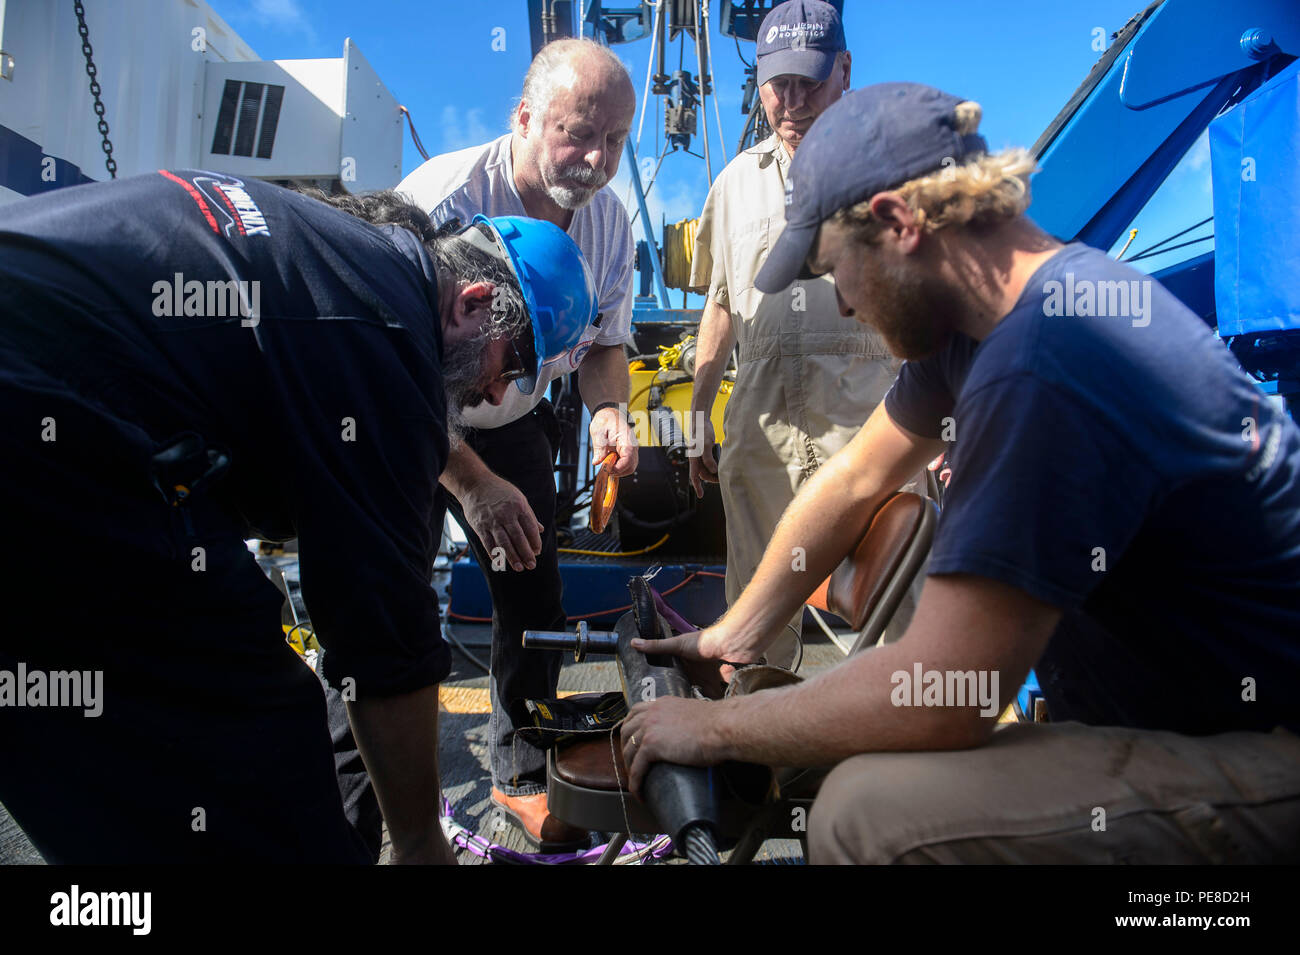 151023-N-RZ218-131   BAHAMAS (Oct. 23, 2015) Contractors with Phoenix International Incorporated prepare a tow pinger locater 25 (TPL 25) for the upcoming salvage mission aboard USNS Apache (T-ATF 172). USNS Apache departed Norfolk, Va., Oct. 19, to begin searching for wreckage from the missing U.S. Flagged merchant vessel El Faro. The ship is equipped with several pieces of underwater search equipment, including a voyage data recorder locator, side-scan sonar and an underwater remote operated vehicle. The Navy's mission will be to first locate the ship and, if possible, to retrieve the voyage Stock Photo